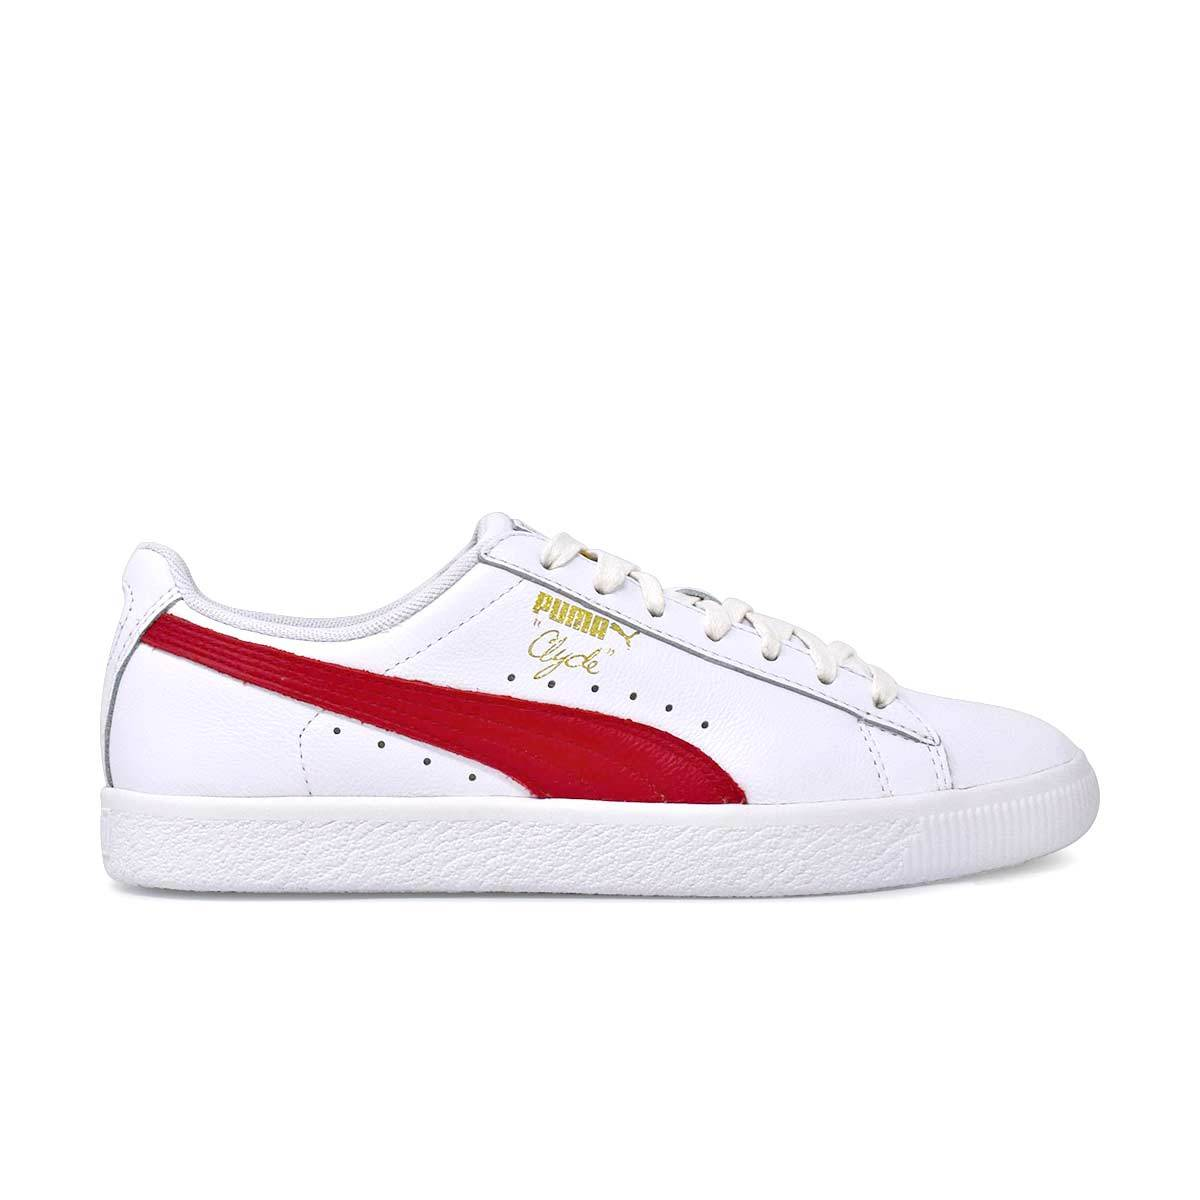 Clyde Core L Foil White/Red